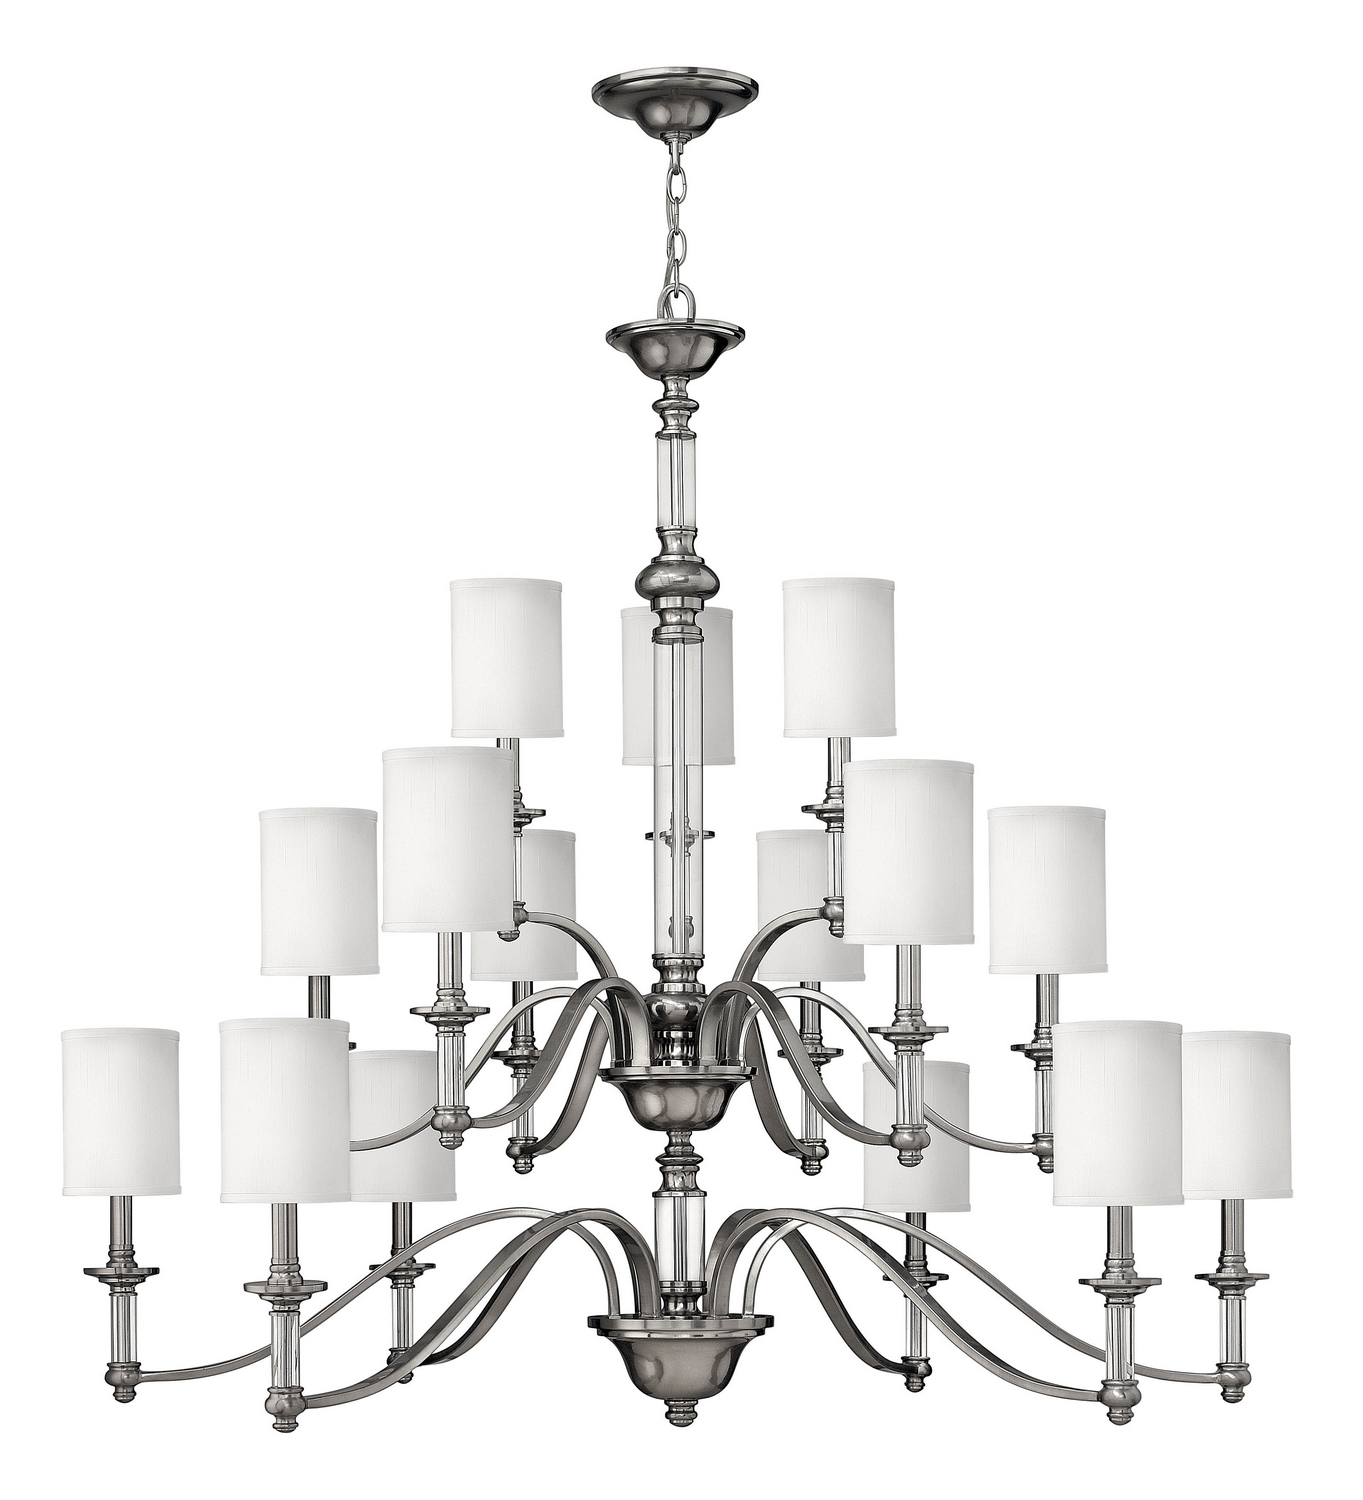 15 Light Foyer Pendant from the Sussex collection by Hinkley 4799BN